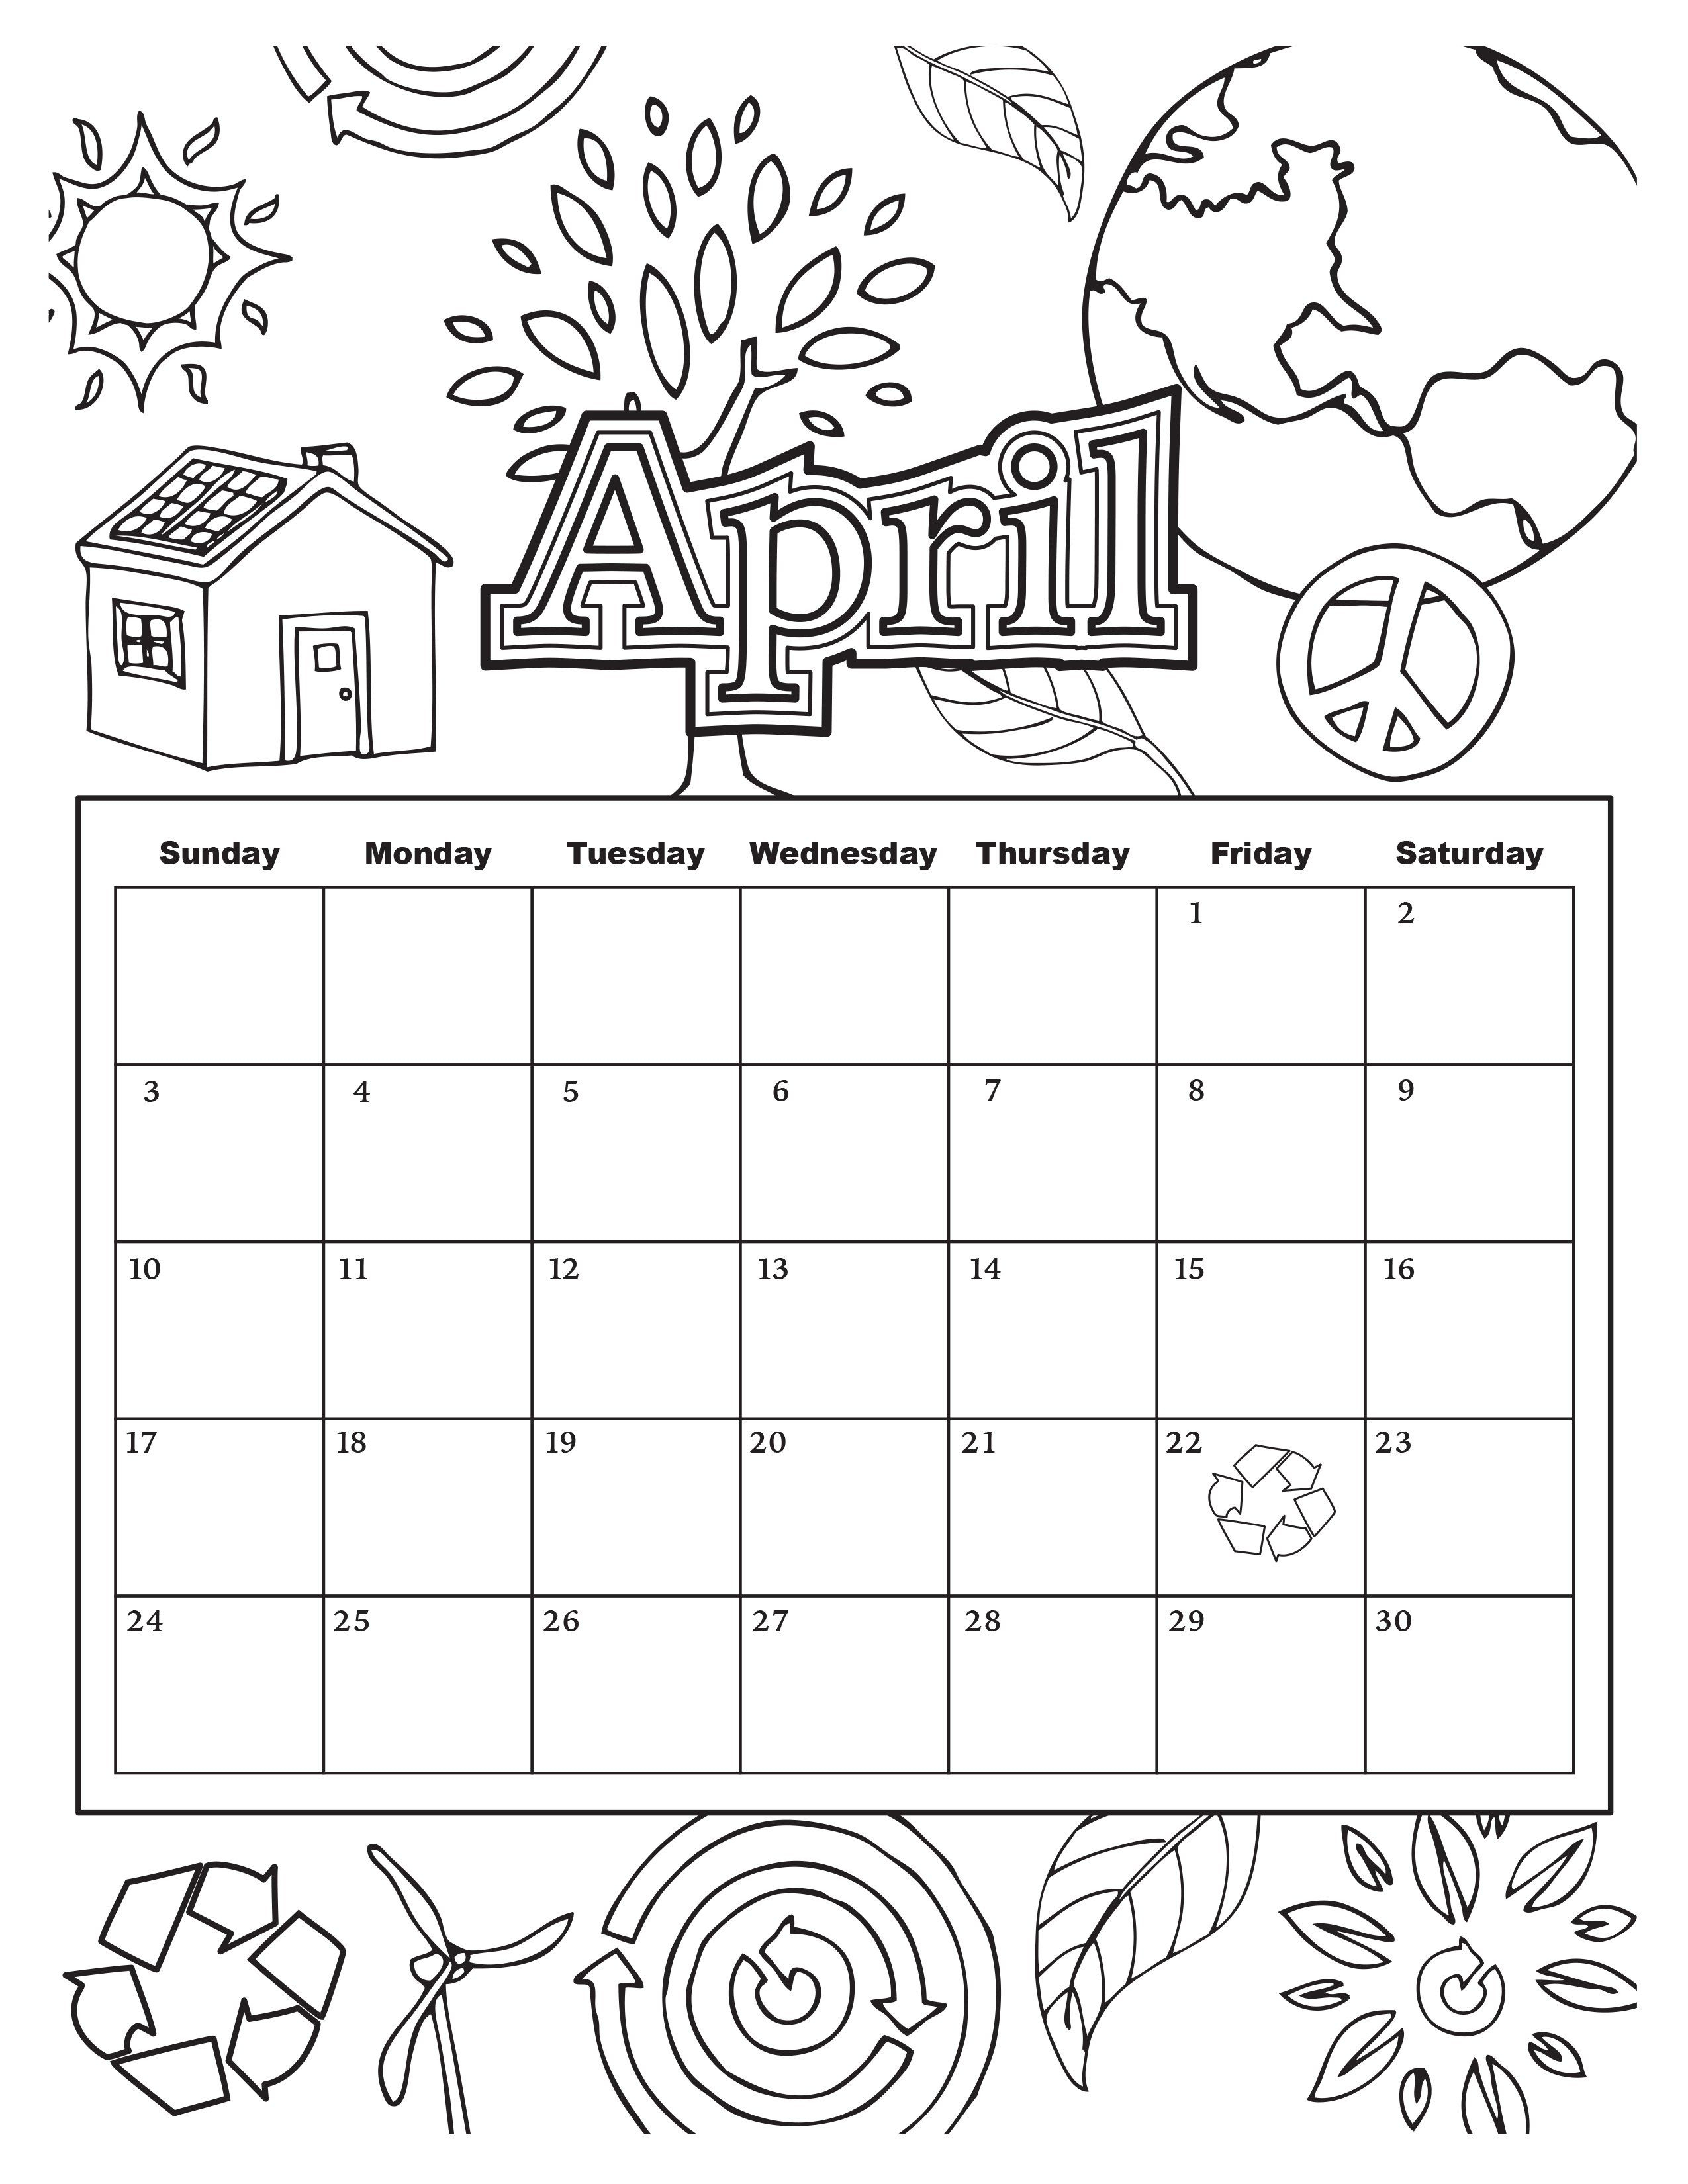 Free Download: Coloring Pages From Popular Adult Coloring Books within Free Printable Adult October Calendar 2019 Coloring Sheets